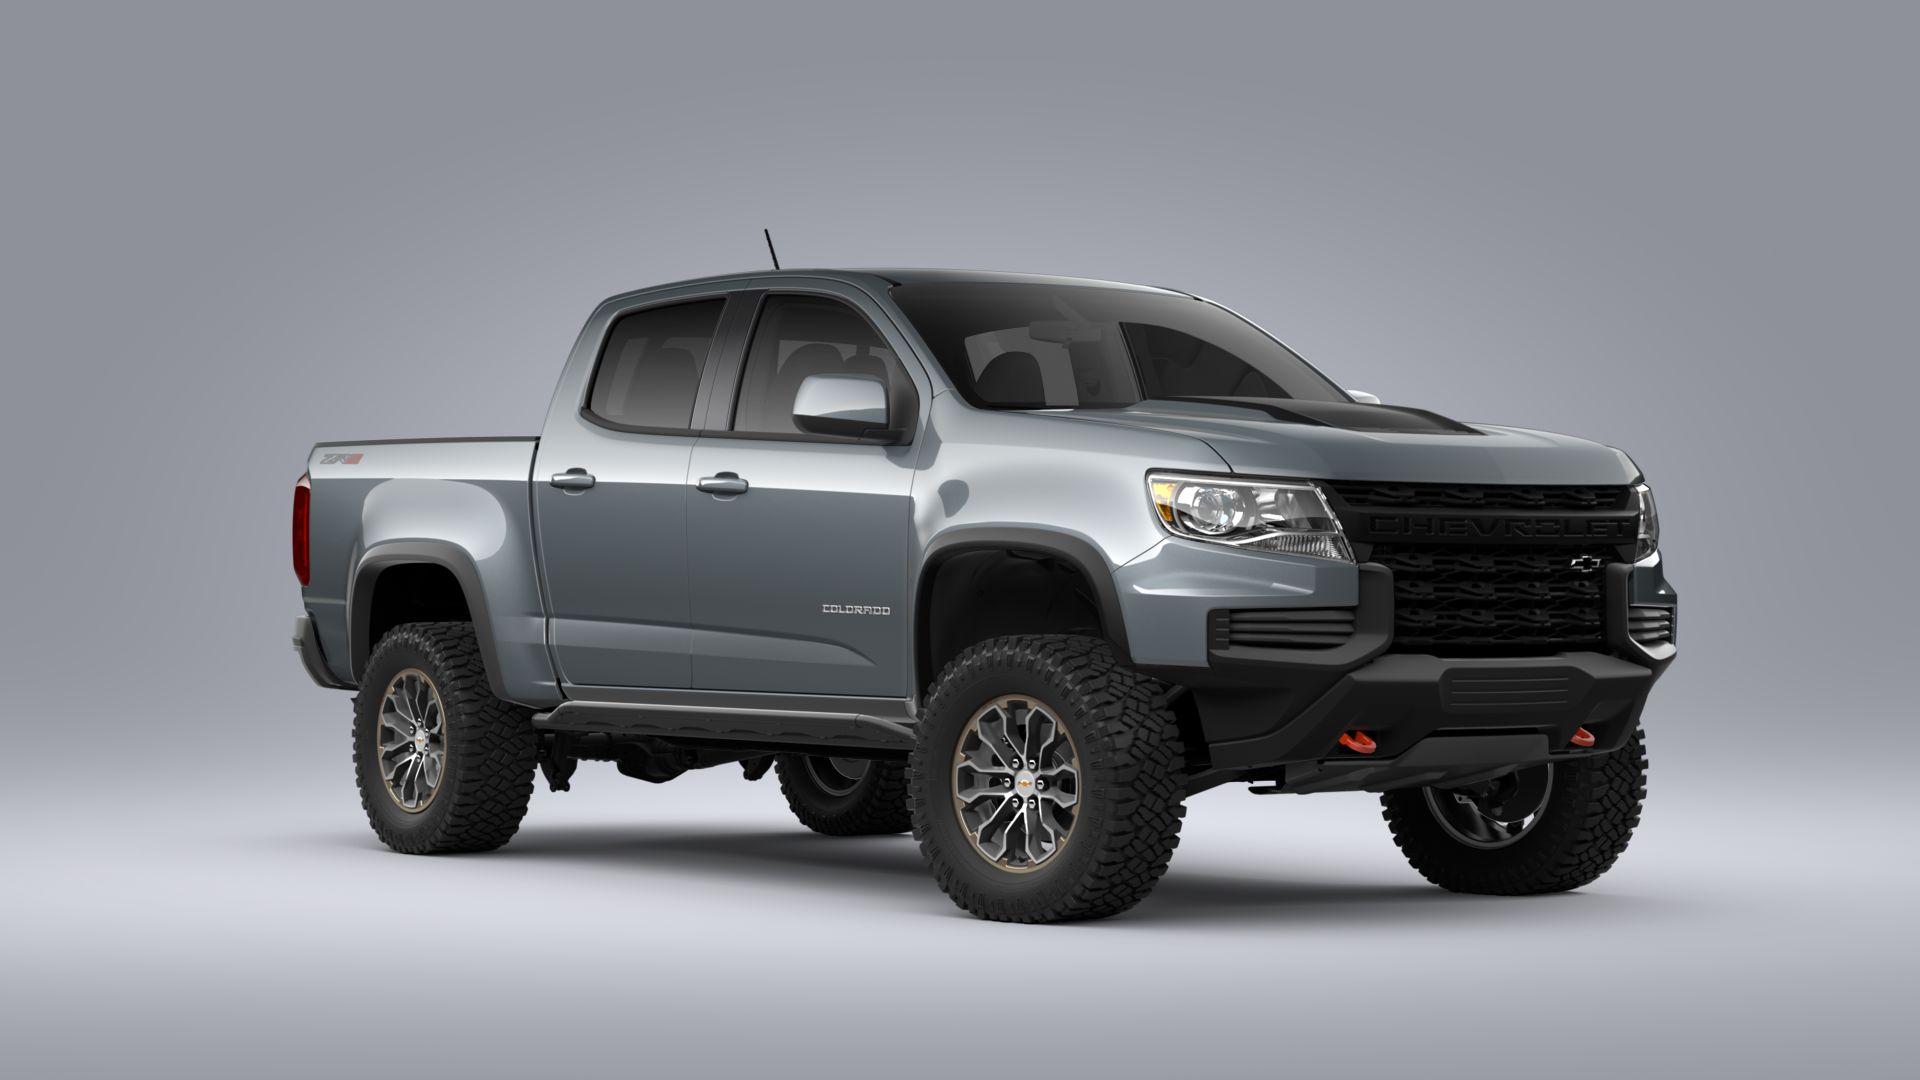 New 2021 Chevrolet Colorado ZR2 FOUR WHEEL DRIVE Crew Cab